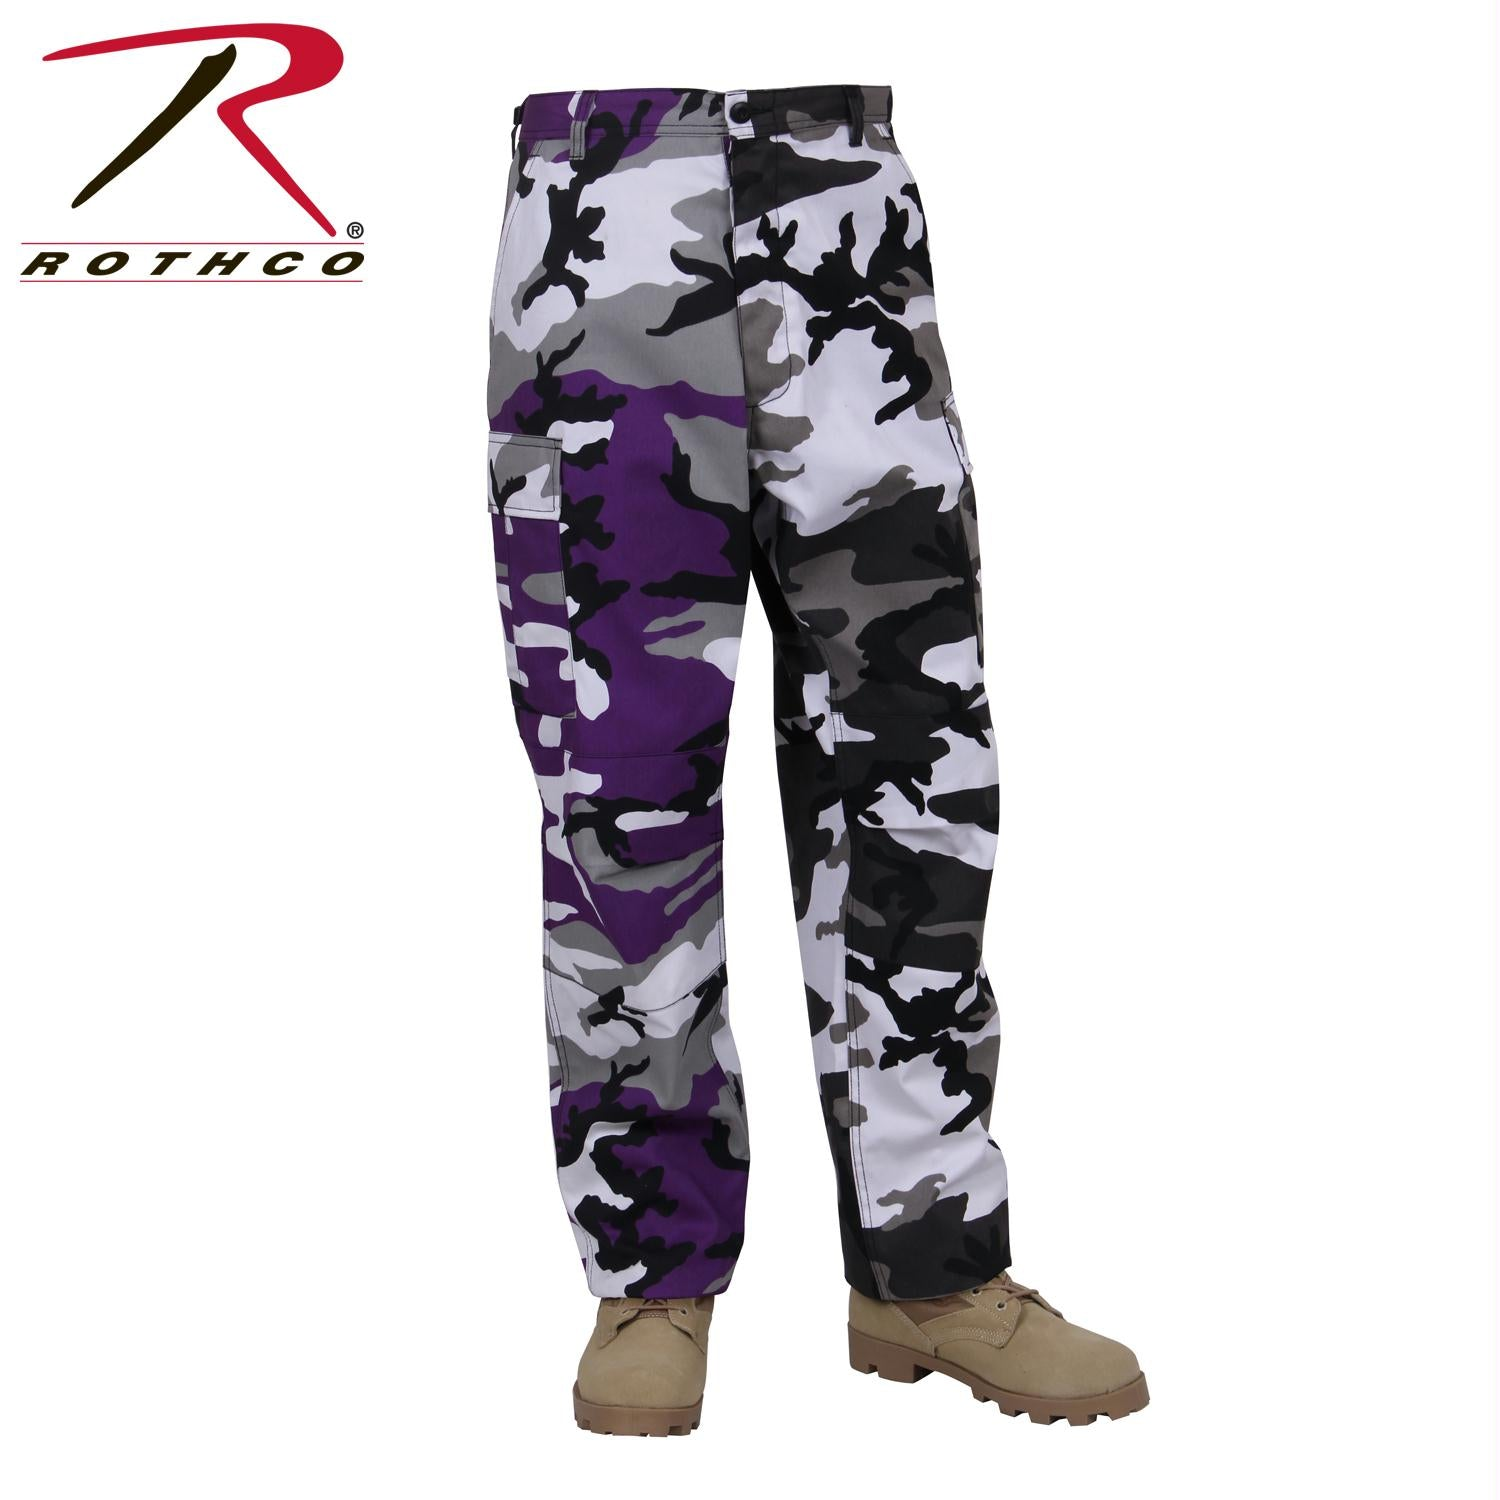 Rothco Two-Tone Camo BDU Pants